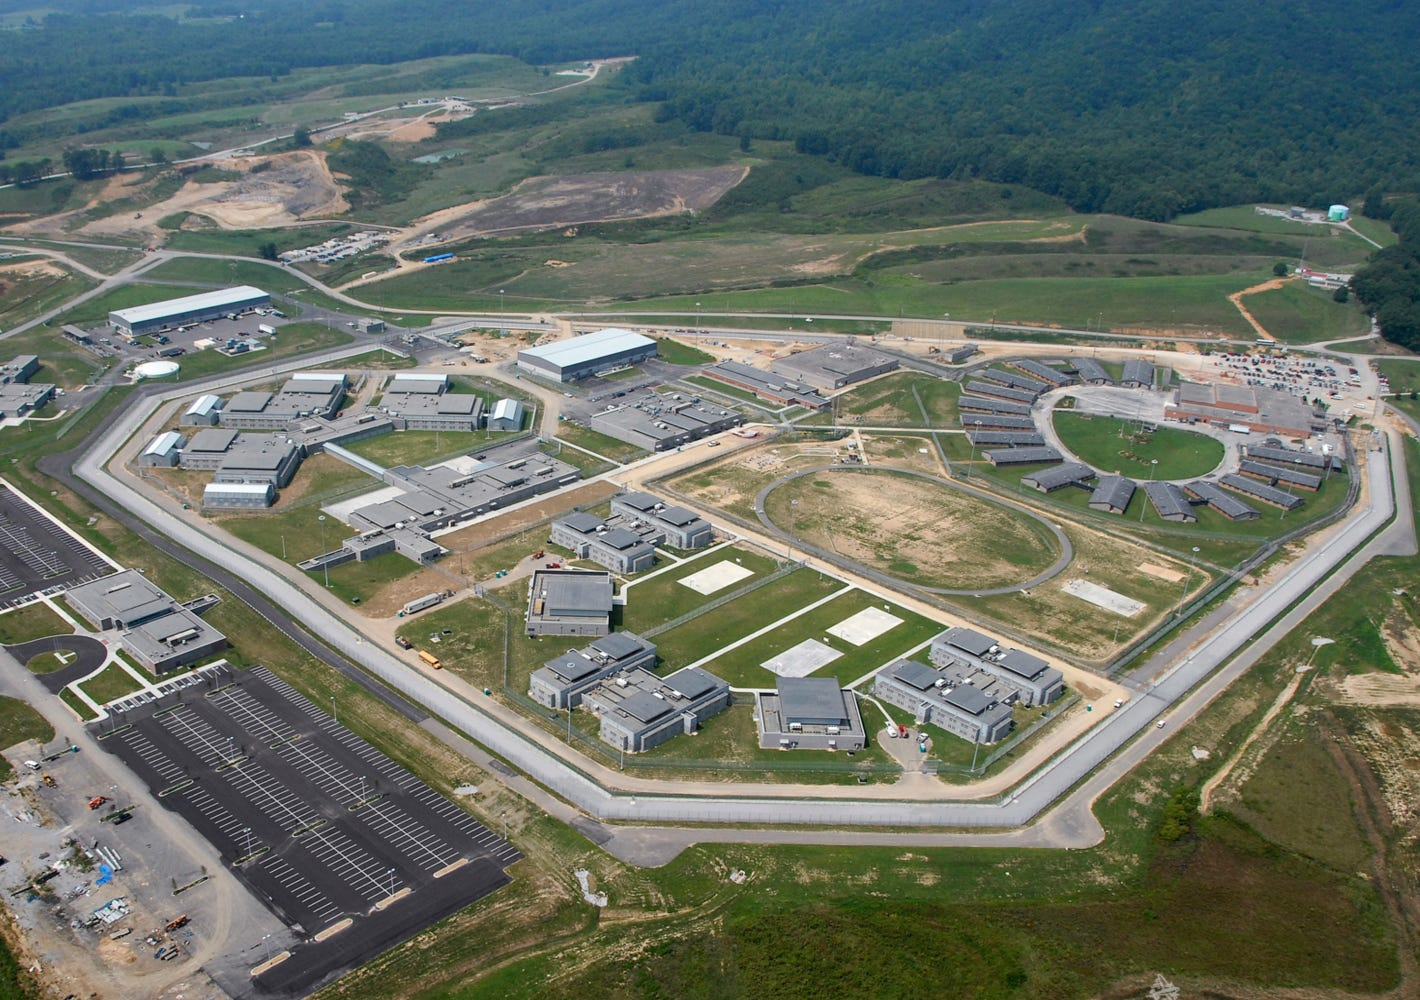 Butner federal correctional complex – USPosts